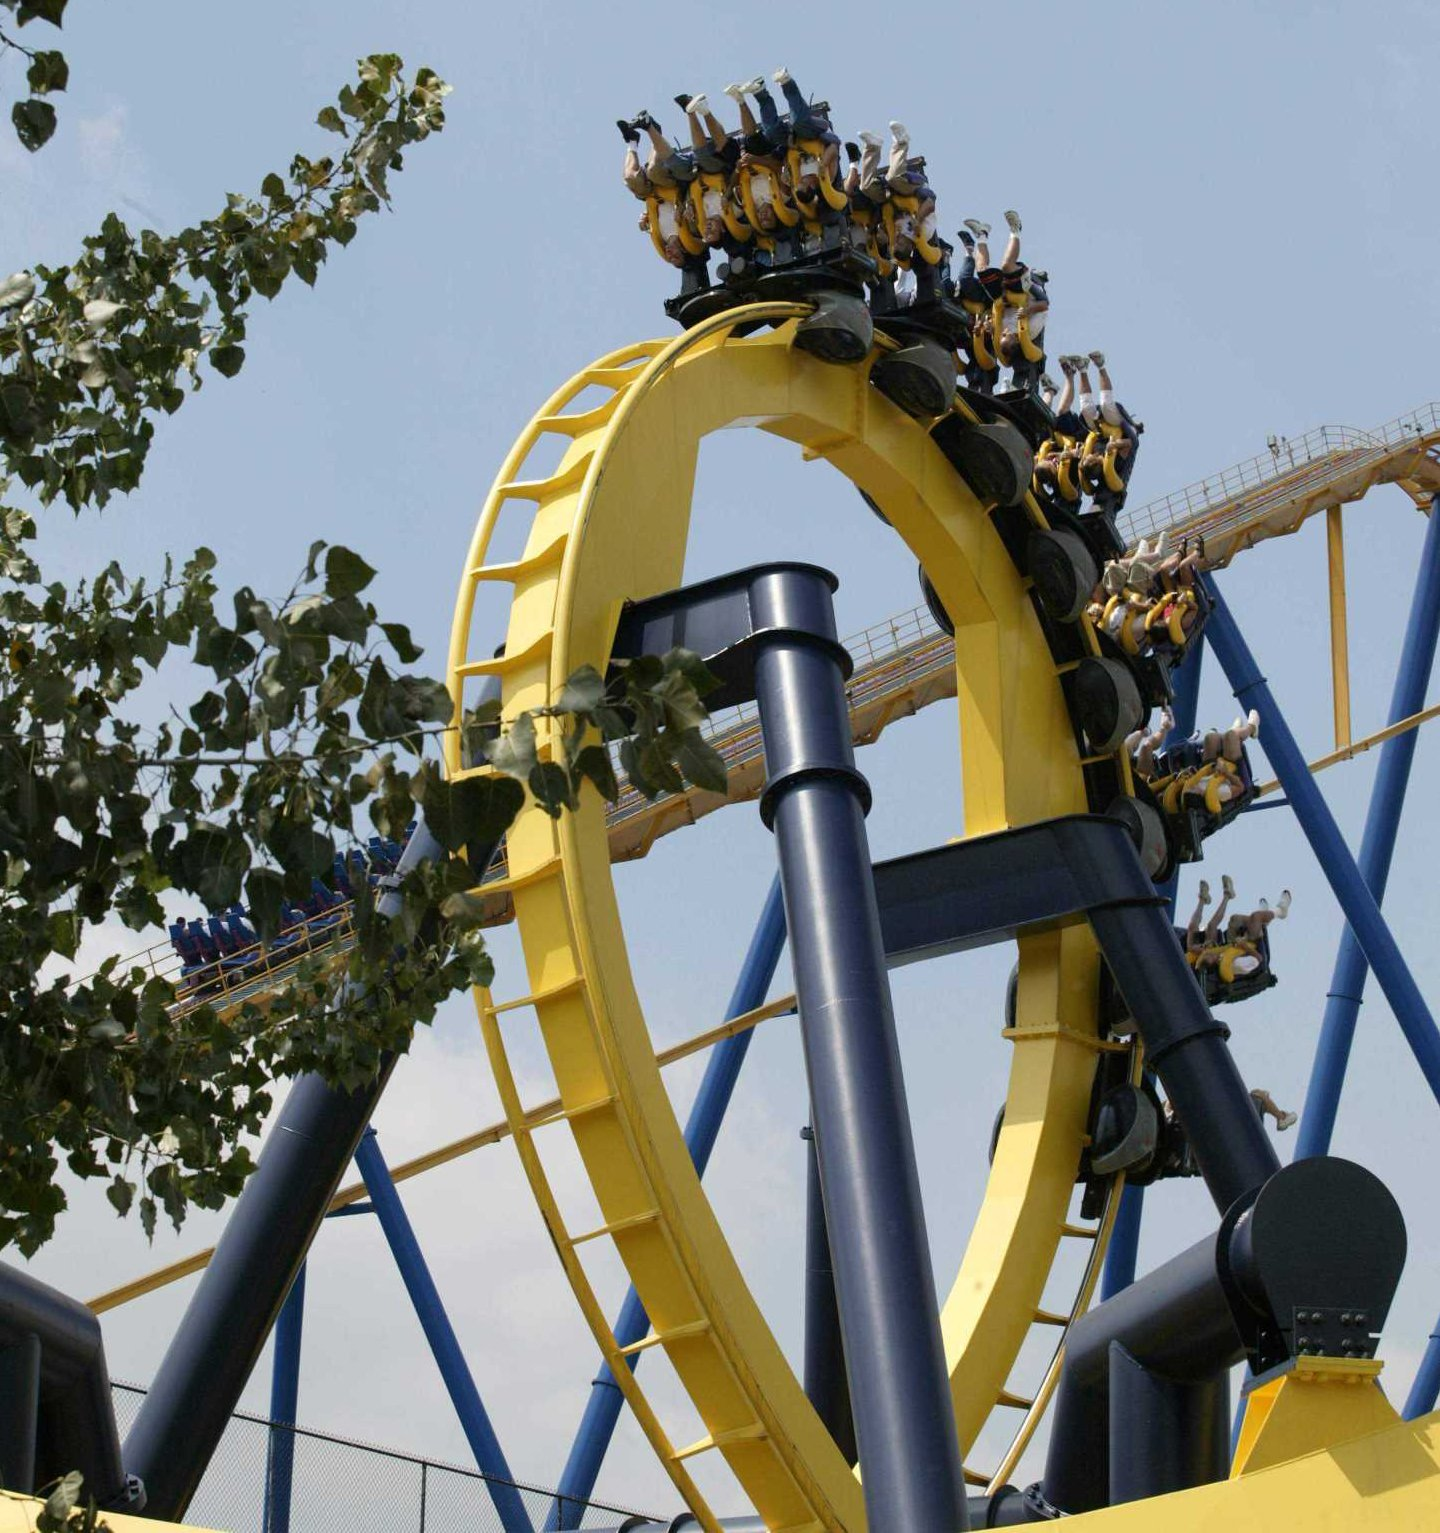 Batman Coaster